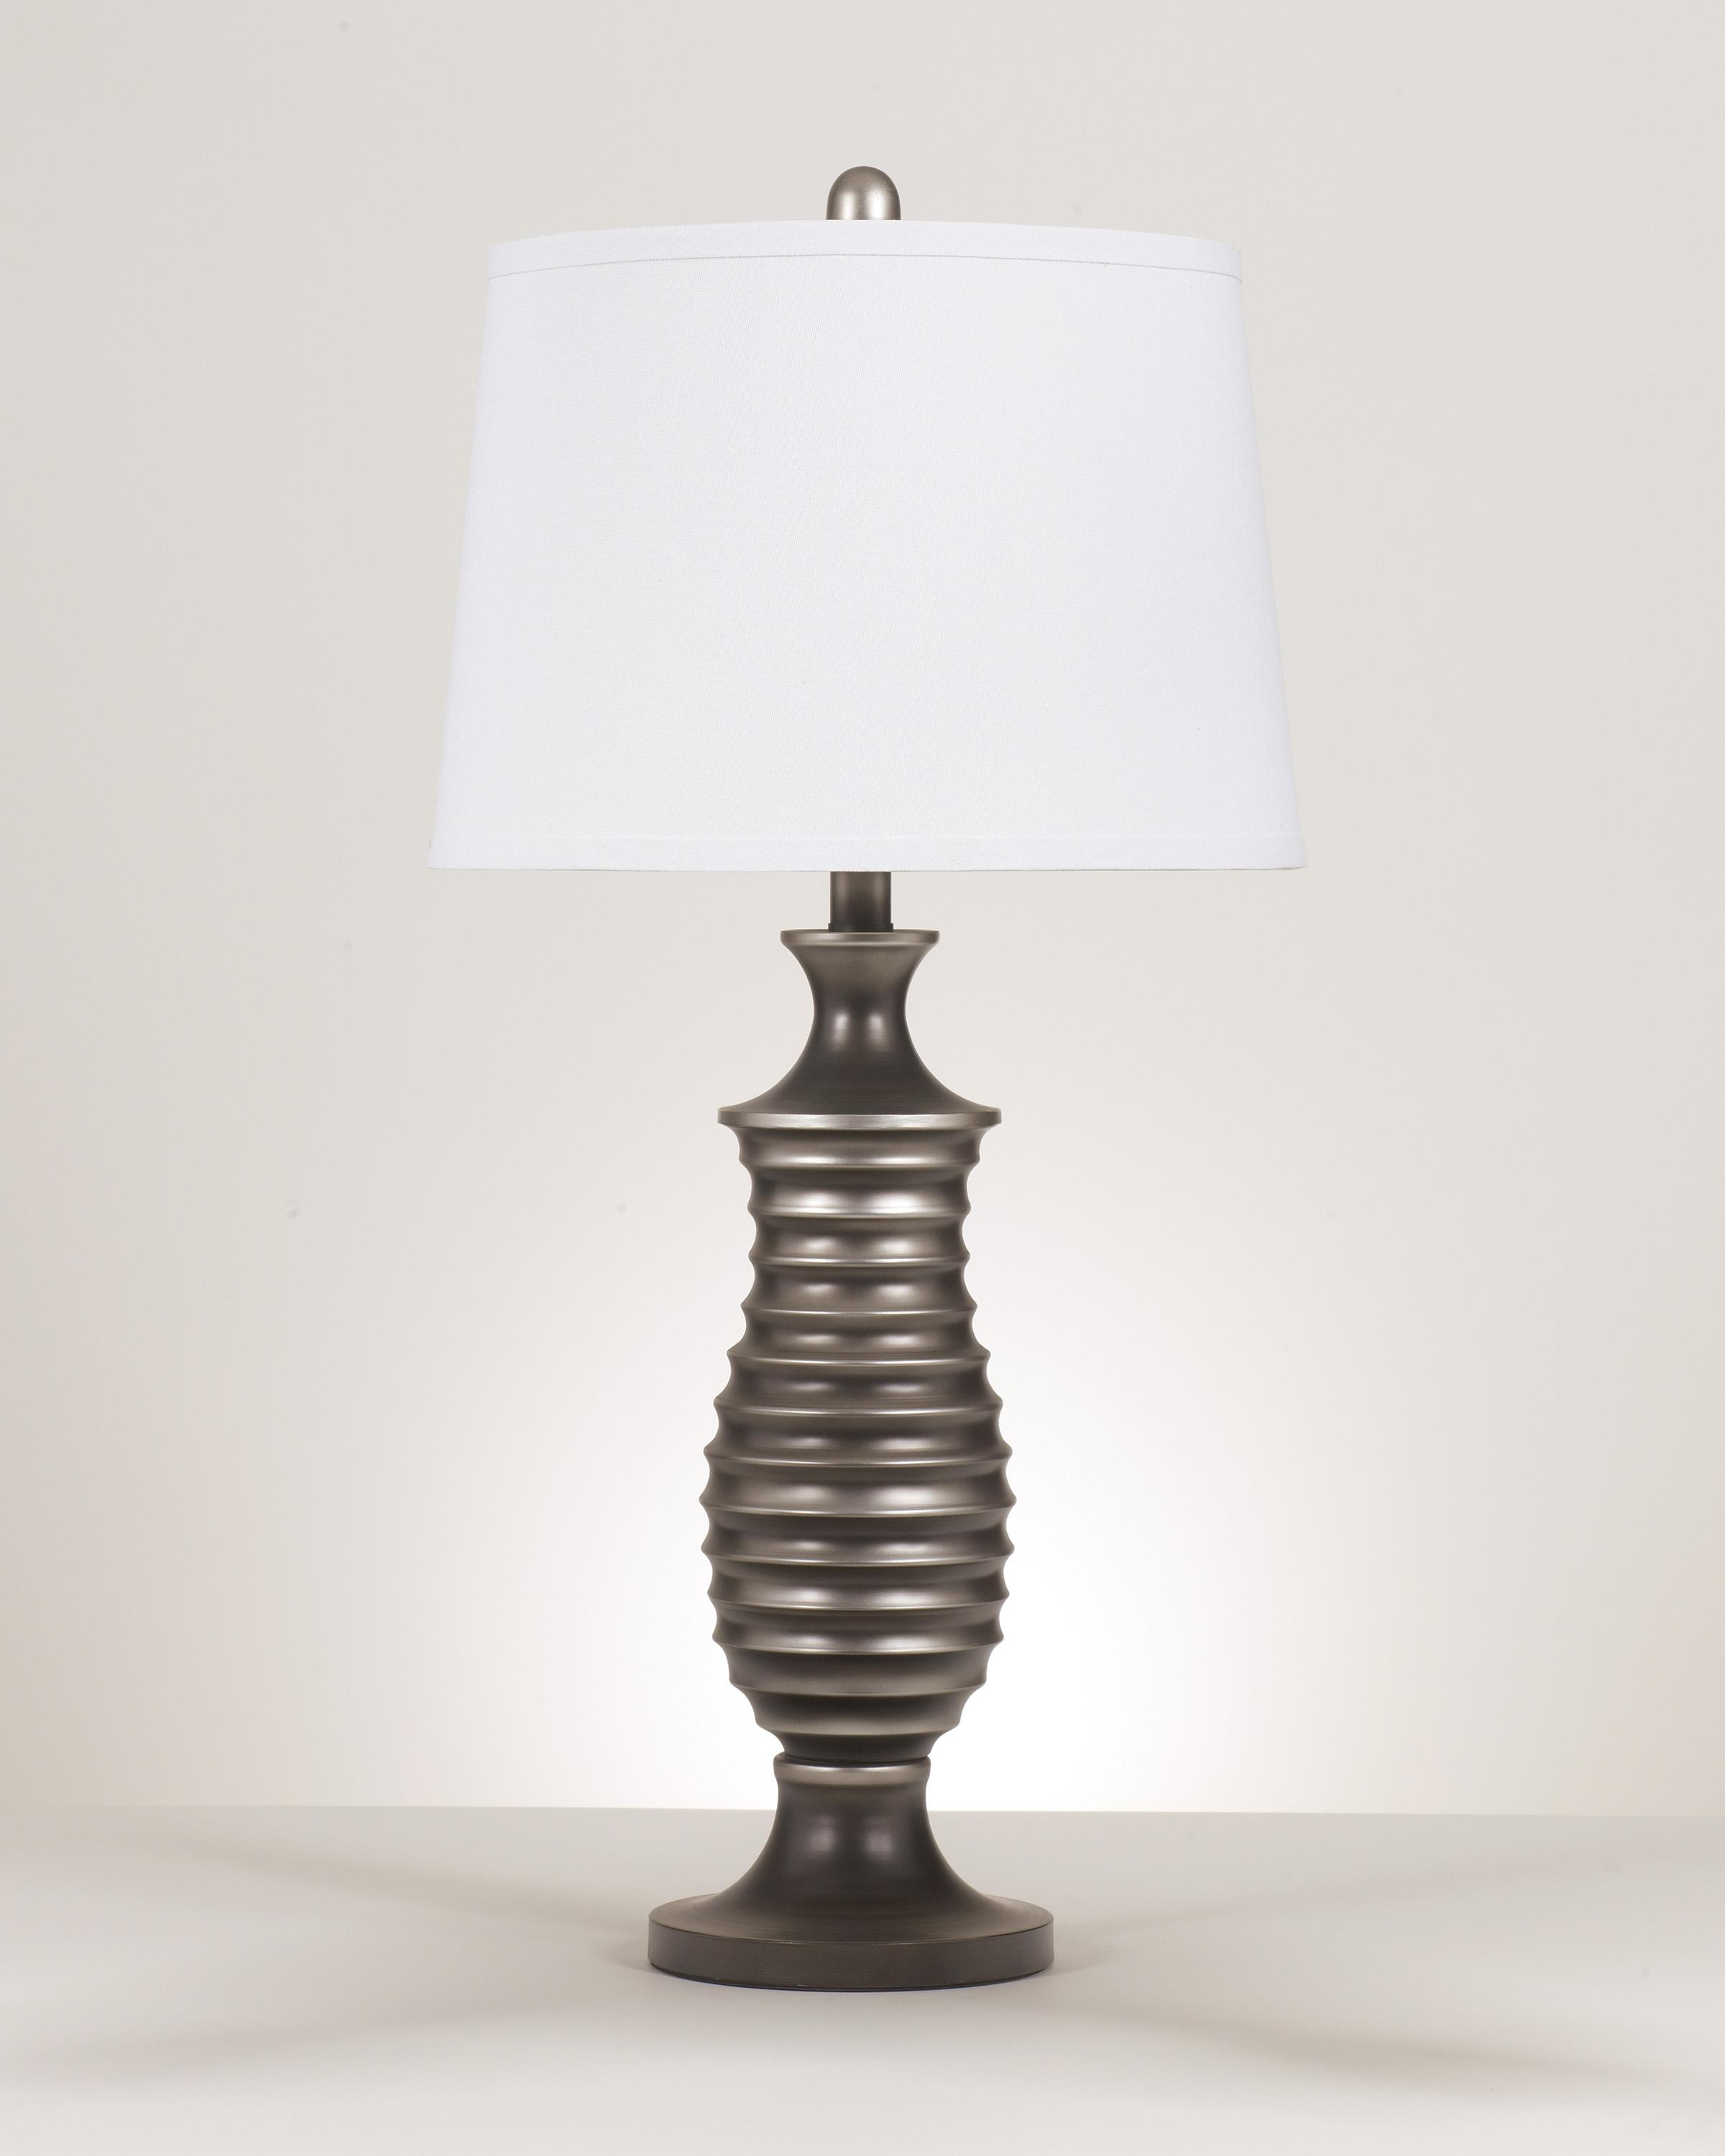 Signature Design by Ashley Lamps - Contemporary Set of 2 Rory Metal Table Lamps - Item Number: L202904